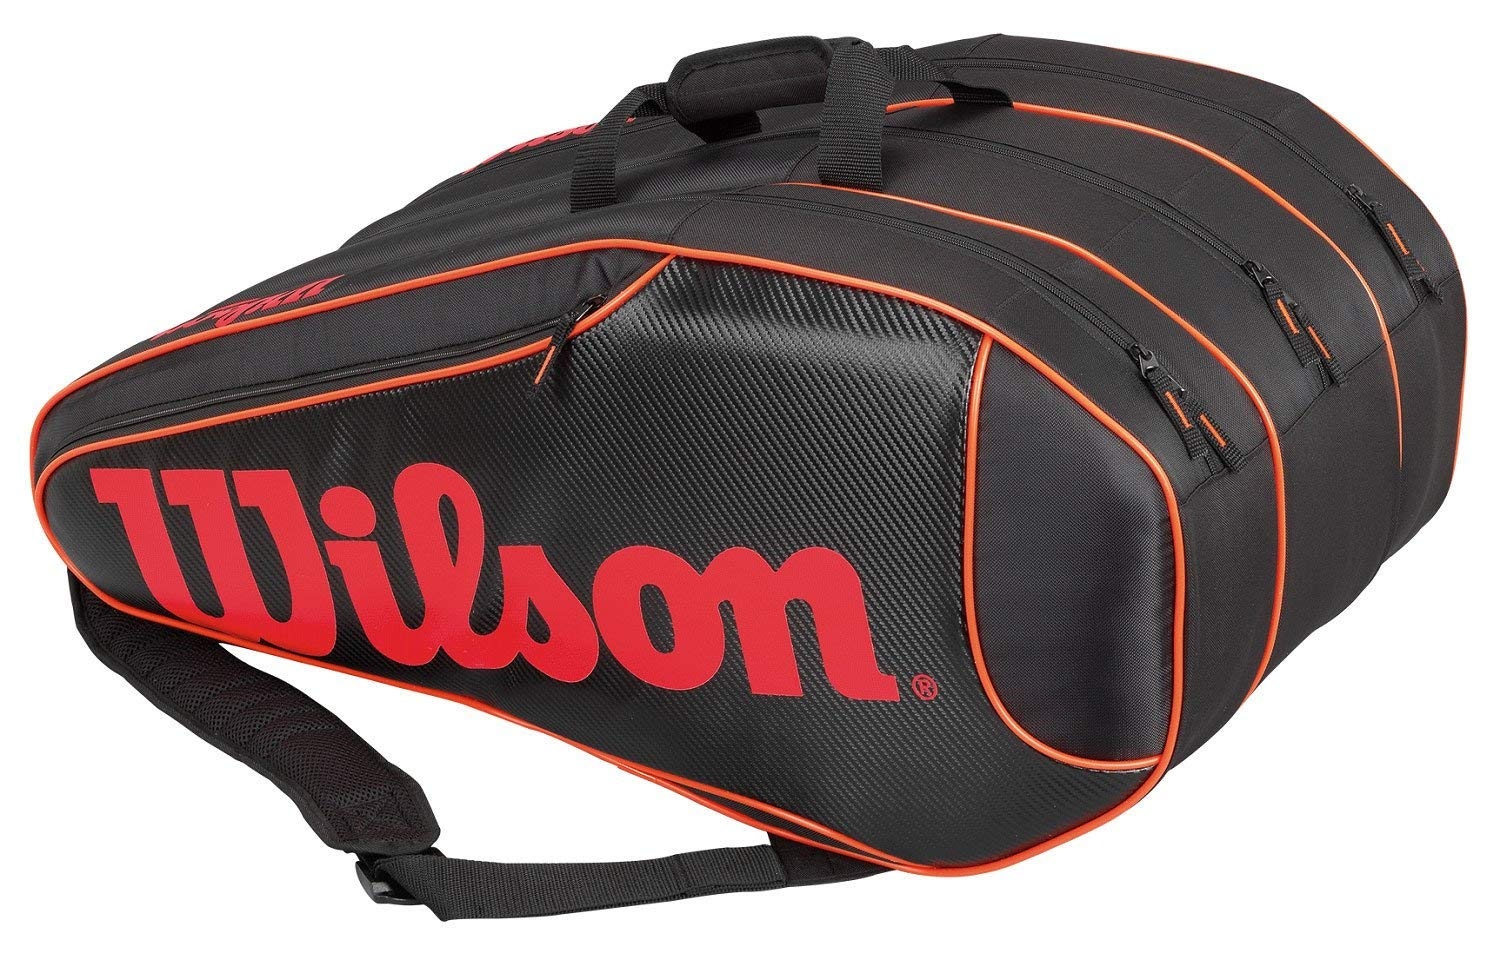 Wilson 12 Racket Tennis Bag